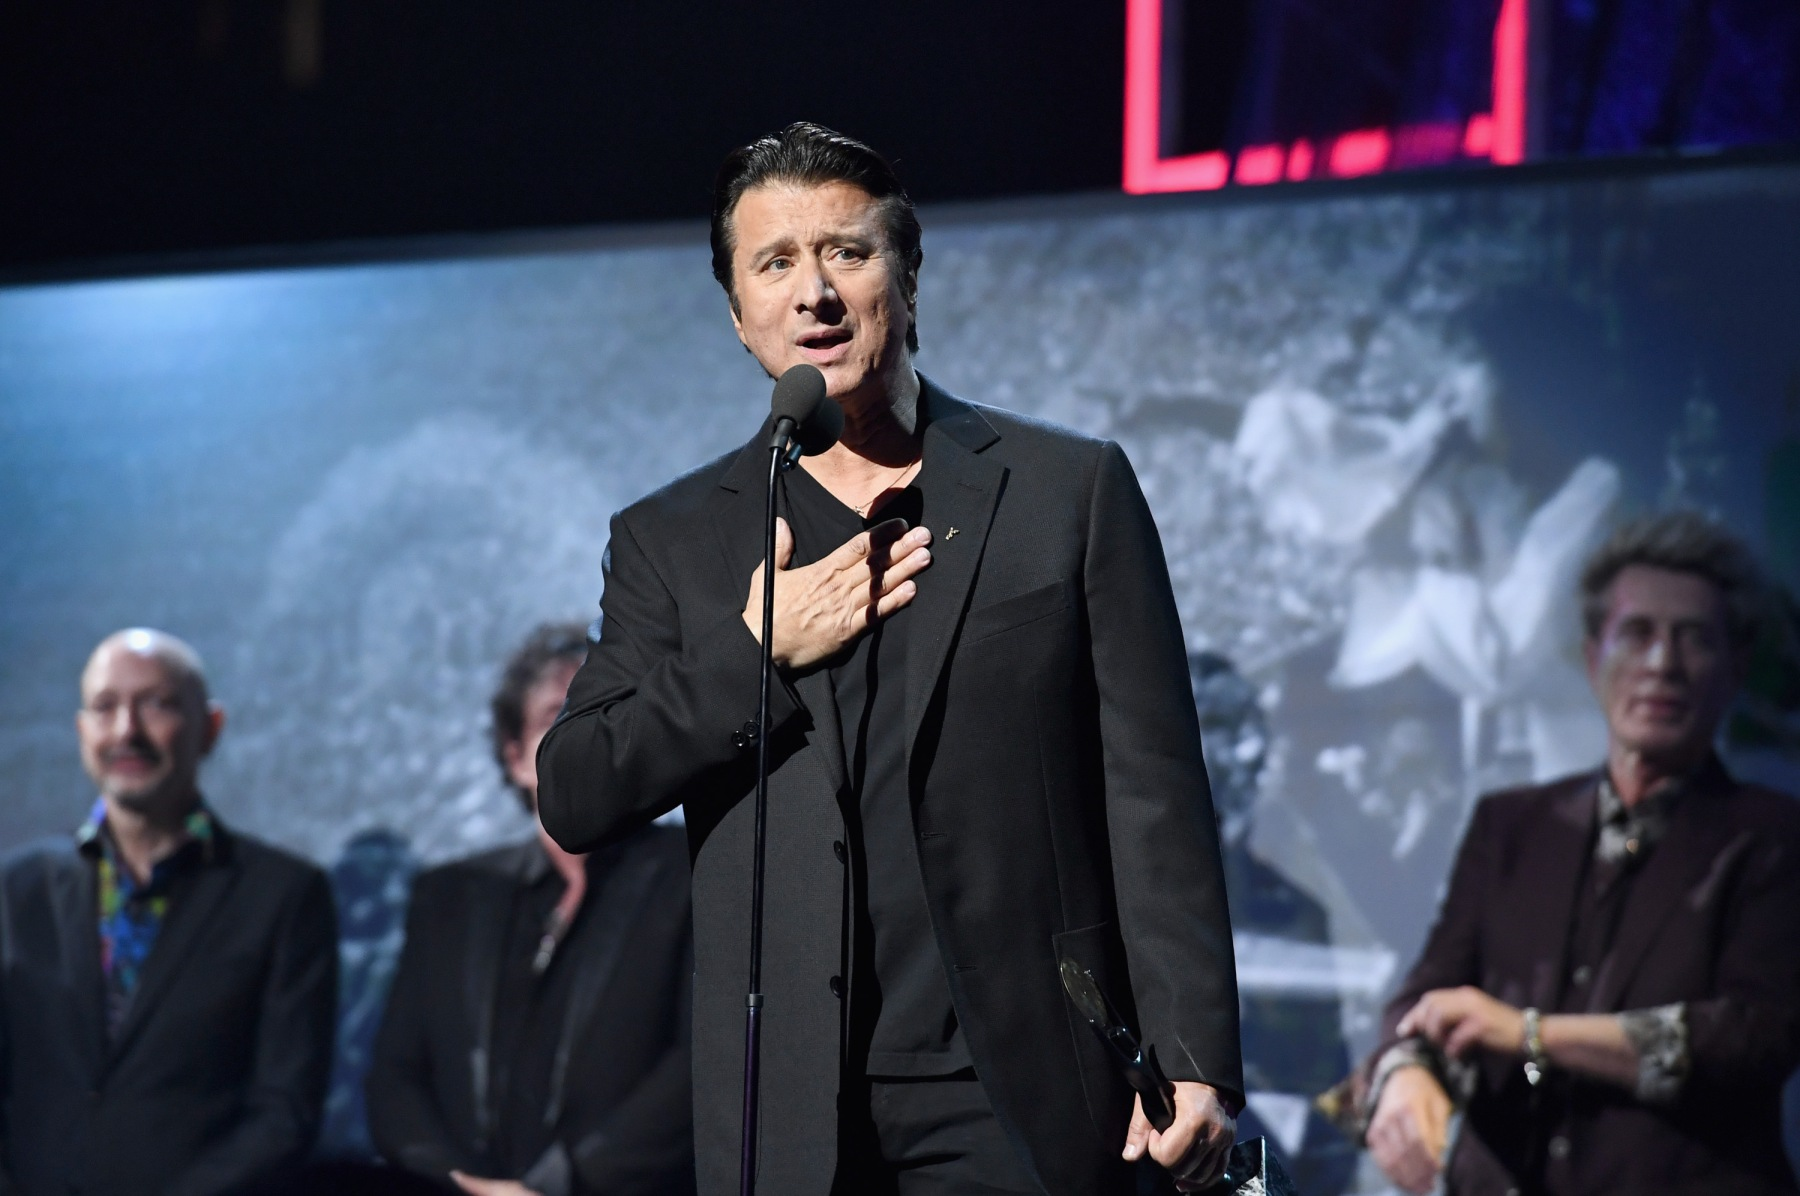 Steve Perry onstage at the 32nd Annual Rock & Roll Hall Of Fame Induction Ceremony at Barclays Center on April 7, 2017 in New York City. Perry recently opened up in an interview about his departure from Journey and the experience that led him back to making music. (Photo by Dimitrios Kambouris/WireImage for Rock and Roll Hall of Fame/Getty Images)